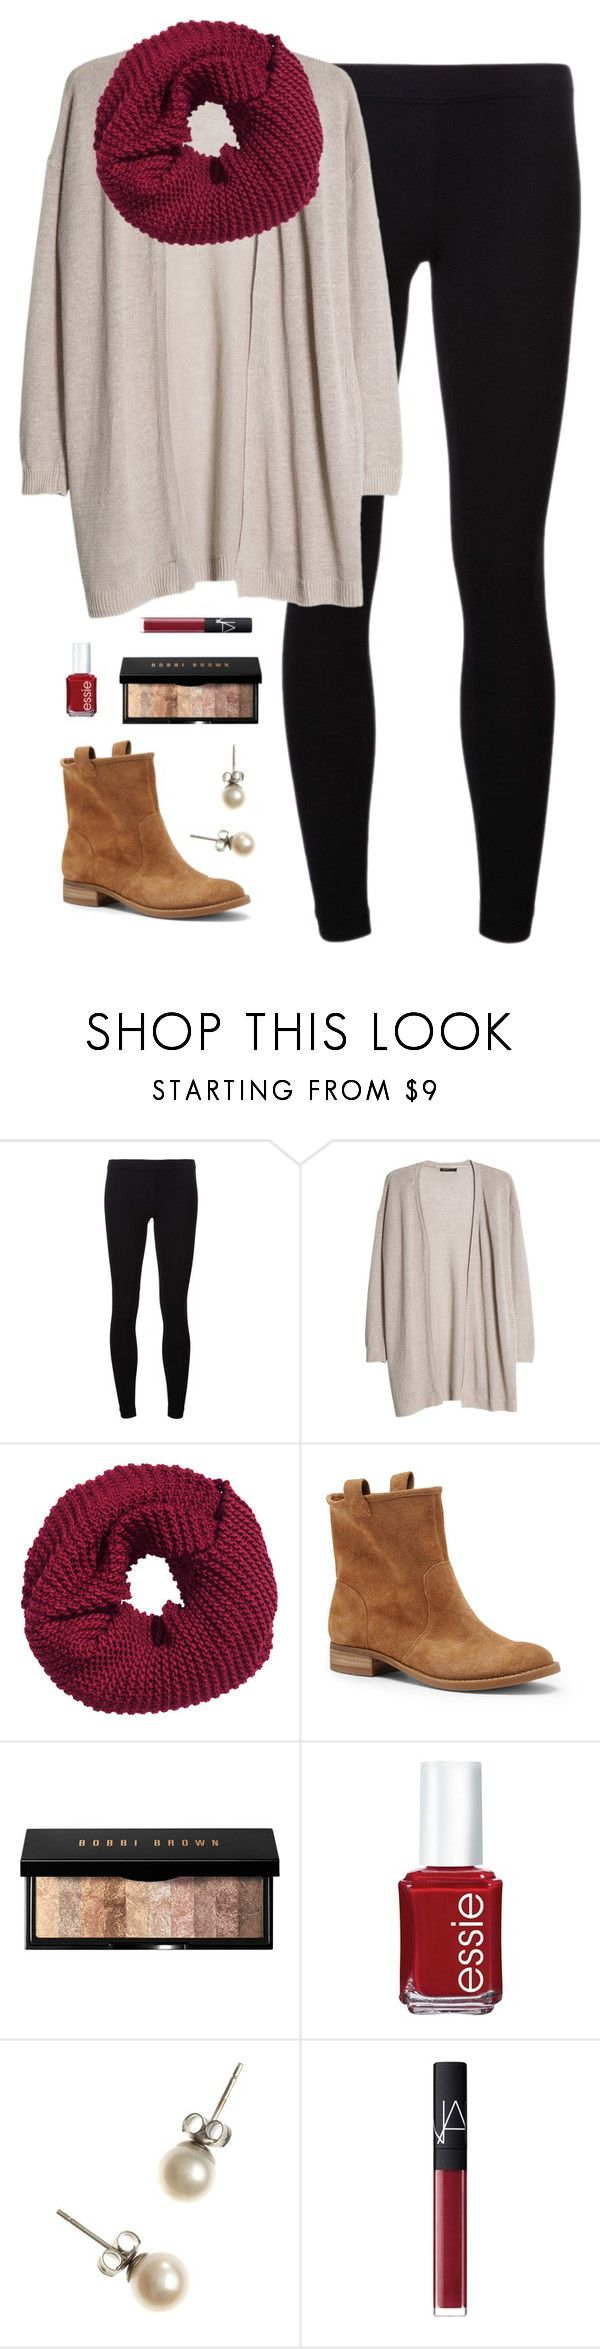 """""""booties"""" by classically-preppy ❤ liked on Polyvore featuring James Perse, MANGO, H&M, Sole Society, Bobbi Brown Cosmetics, Essie, J.Crew and NARS Cosmetics"""